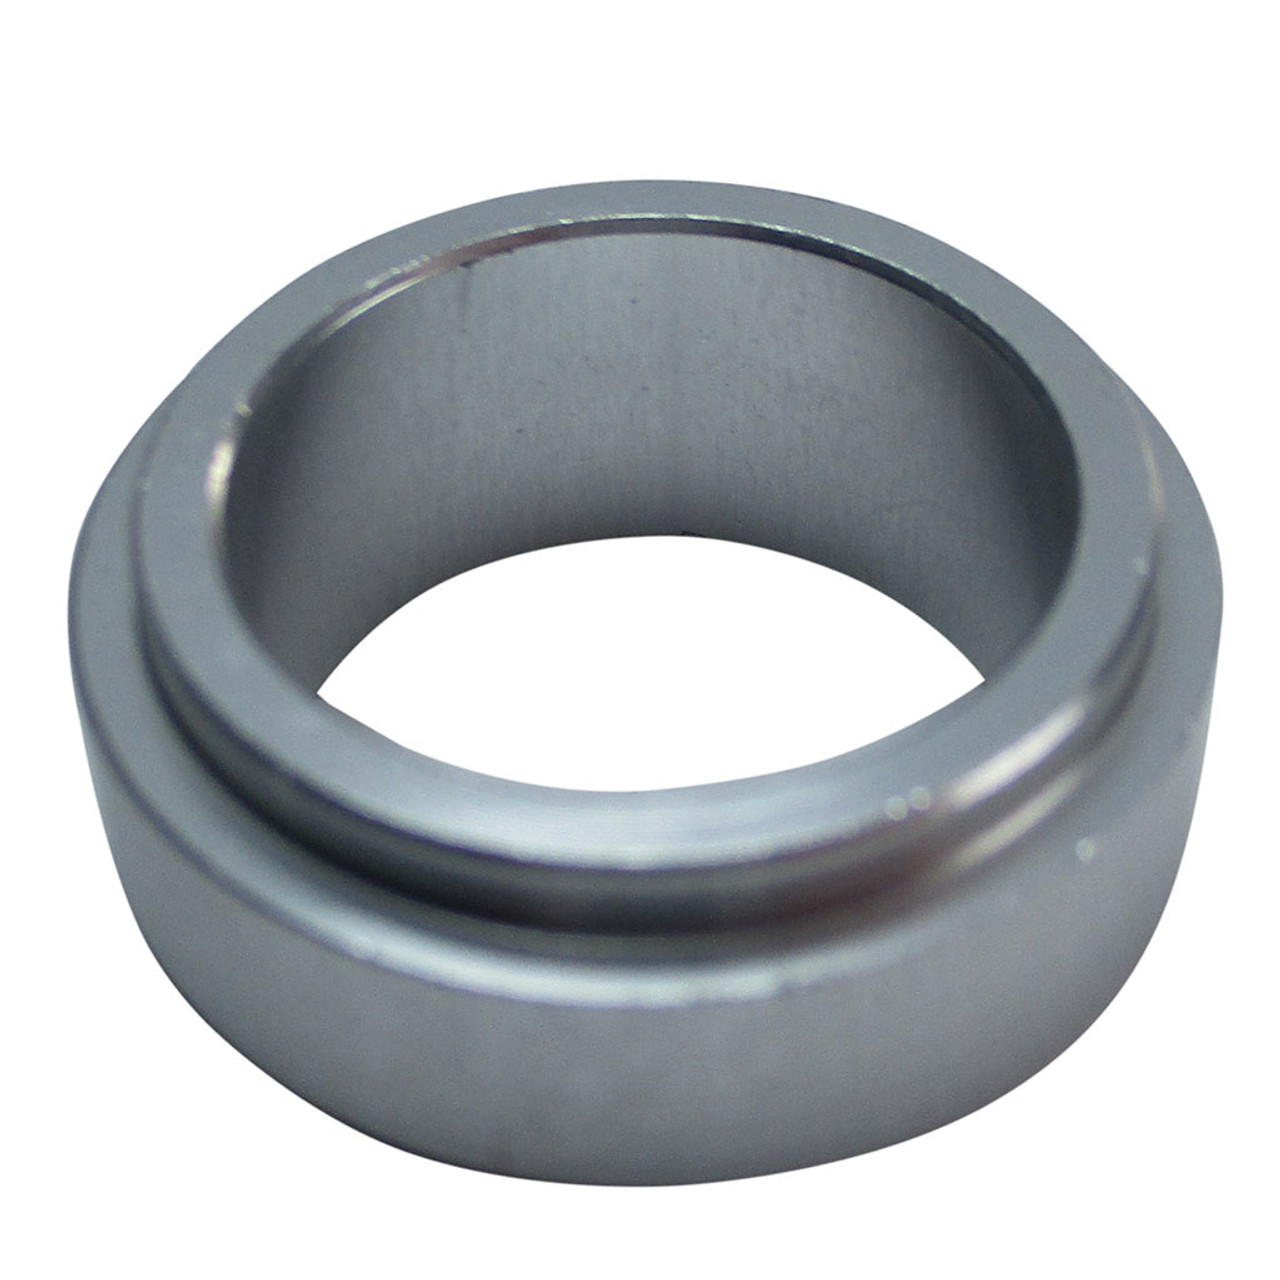 Aluminum Spindle Spacers - 17mm x 8mm